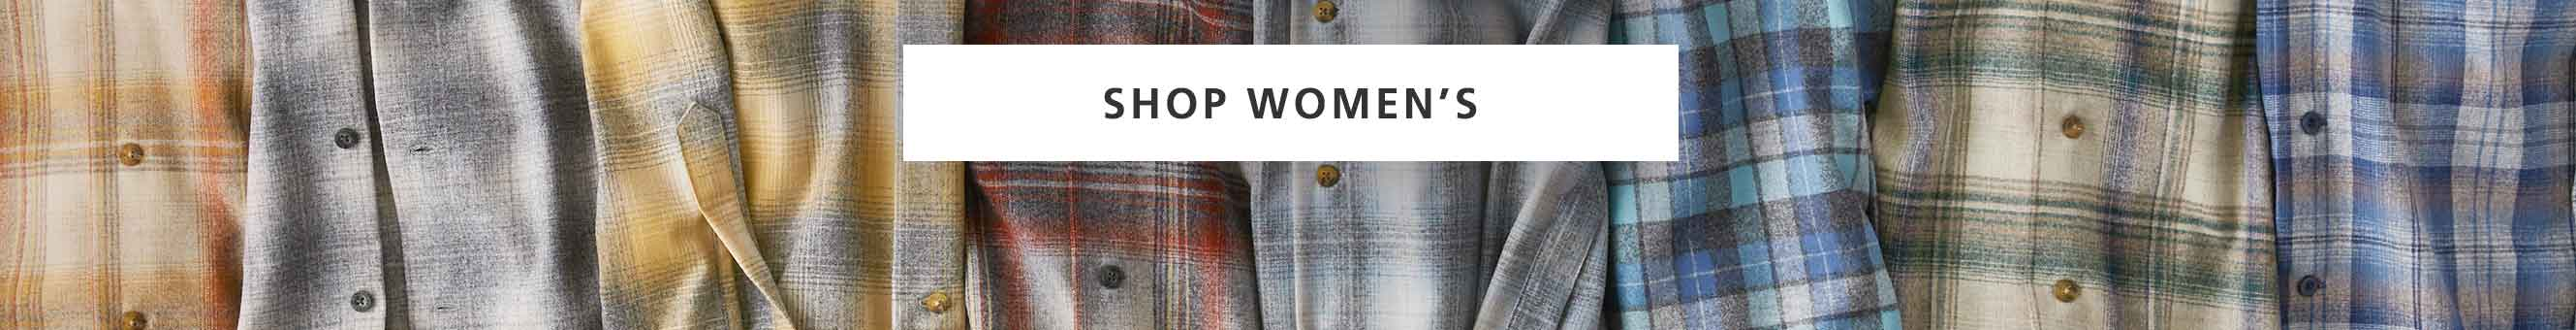 Shop women's wool shirts